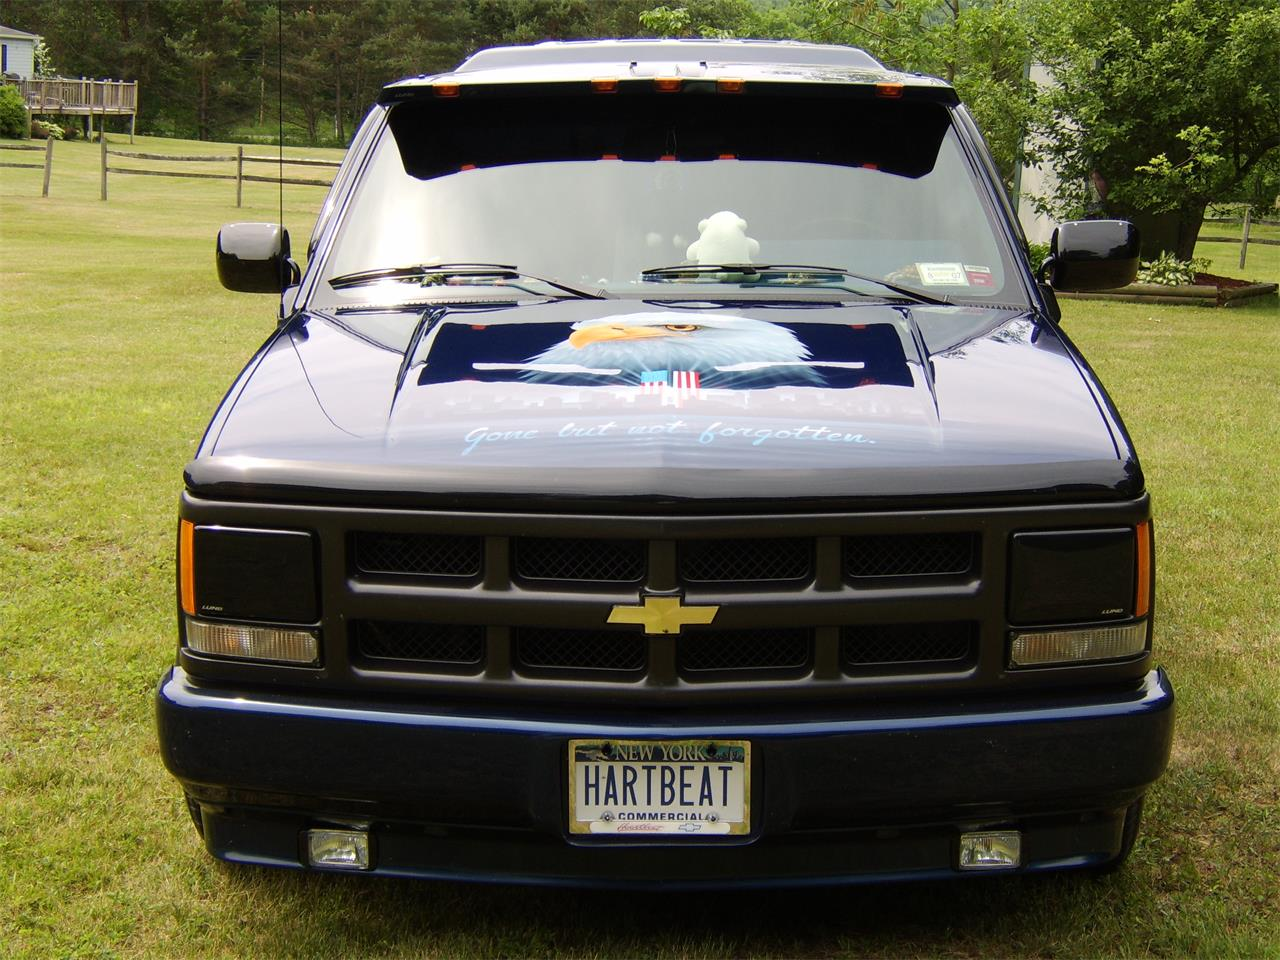 Large Picture of 1993 C/K 1500 located in New York - $9,000.00 Offered by a Private Seller - K0FJ